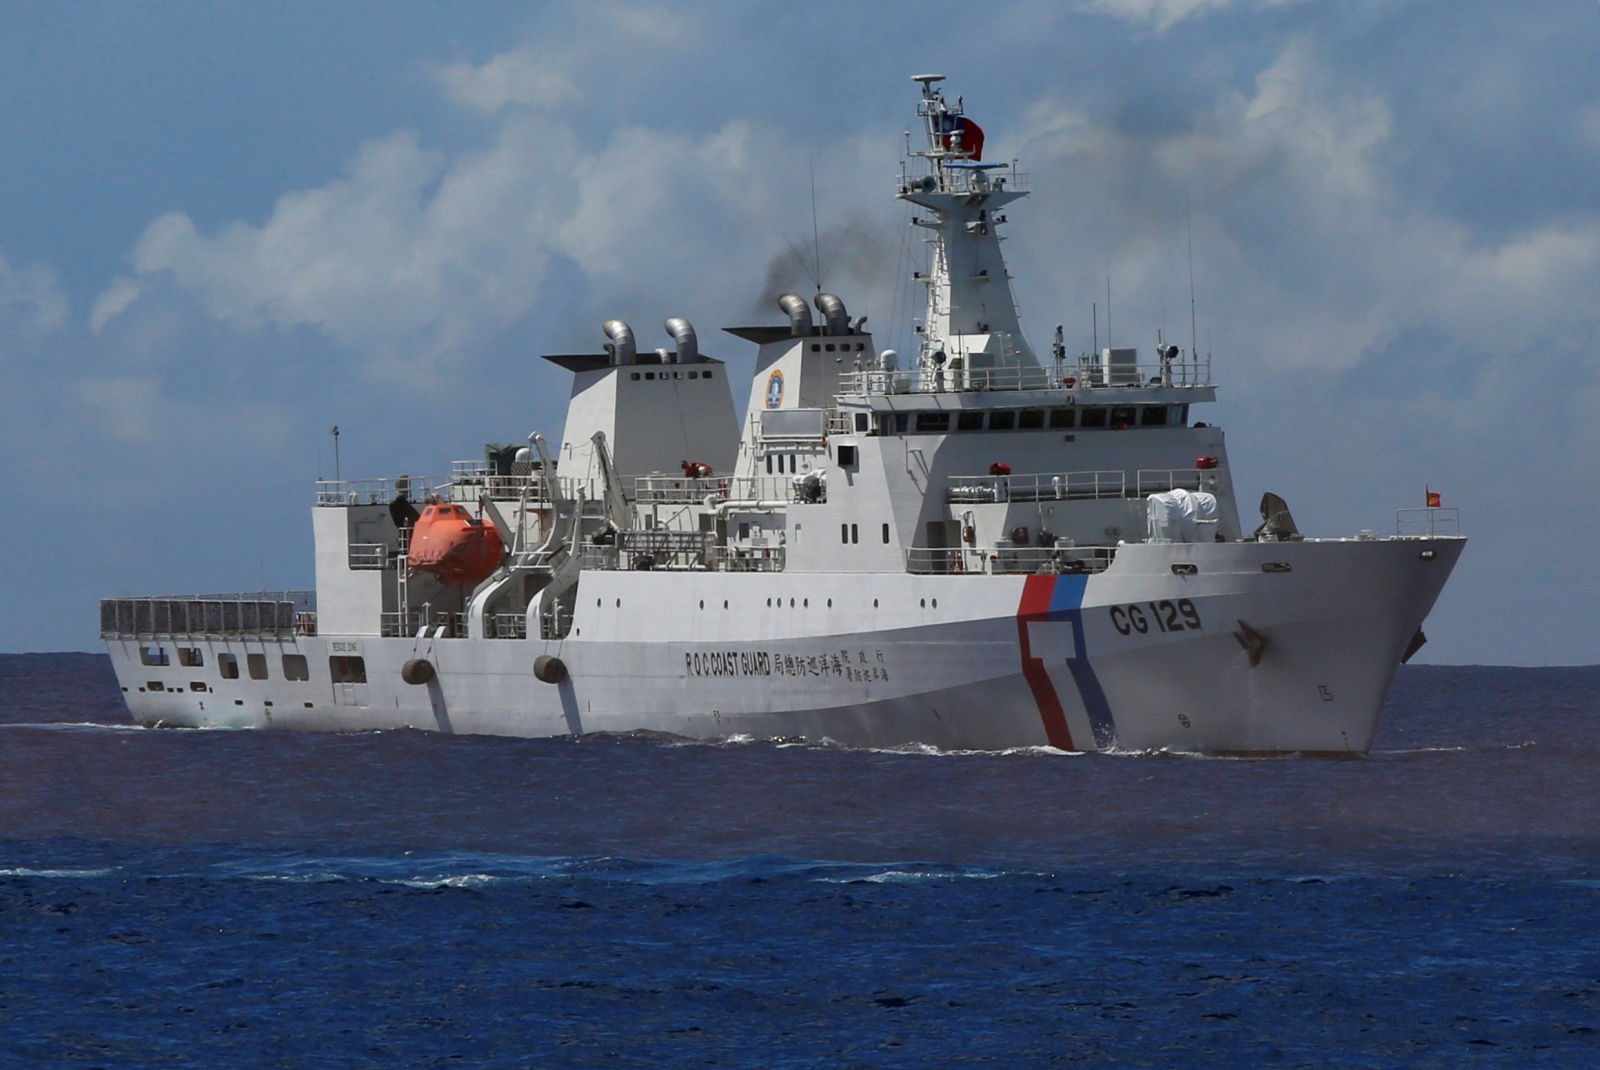 Taiwan coast guard ship